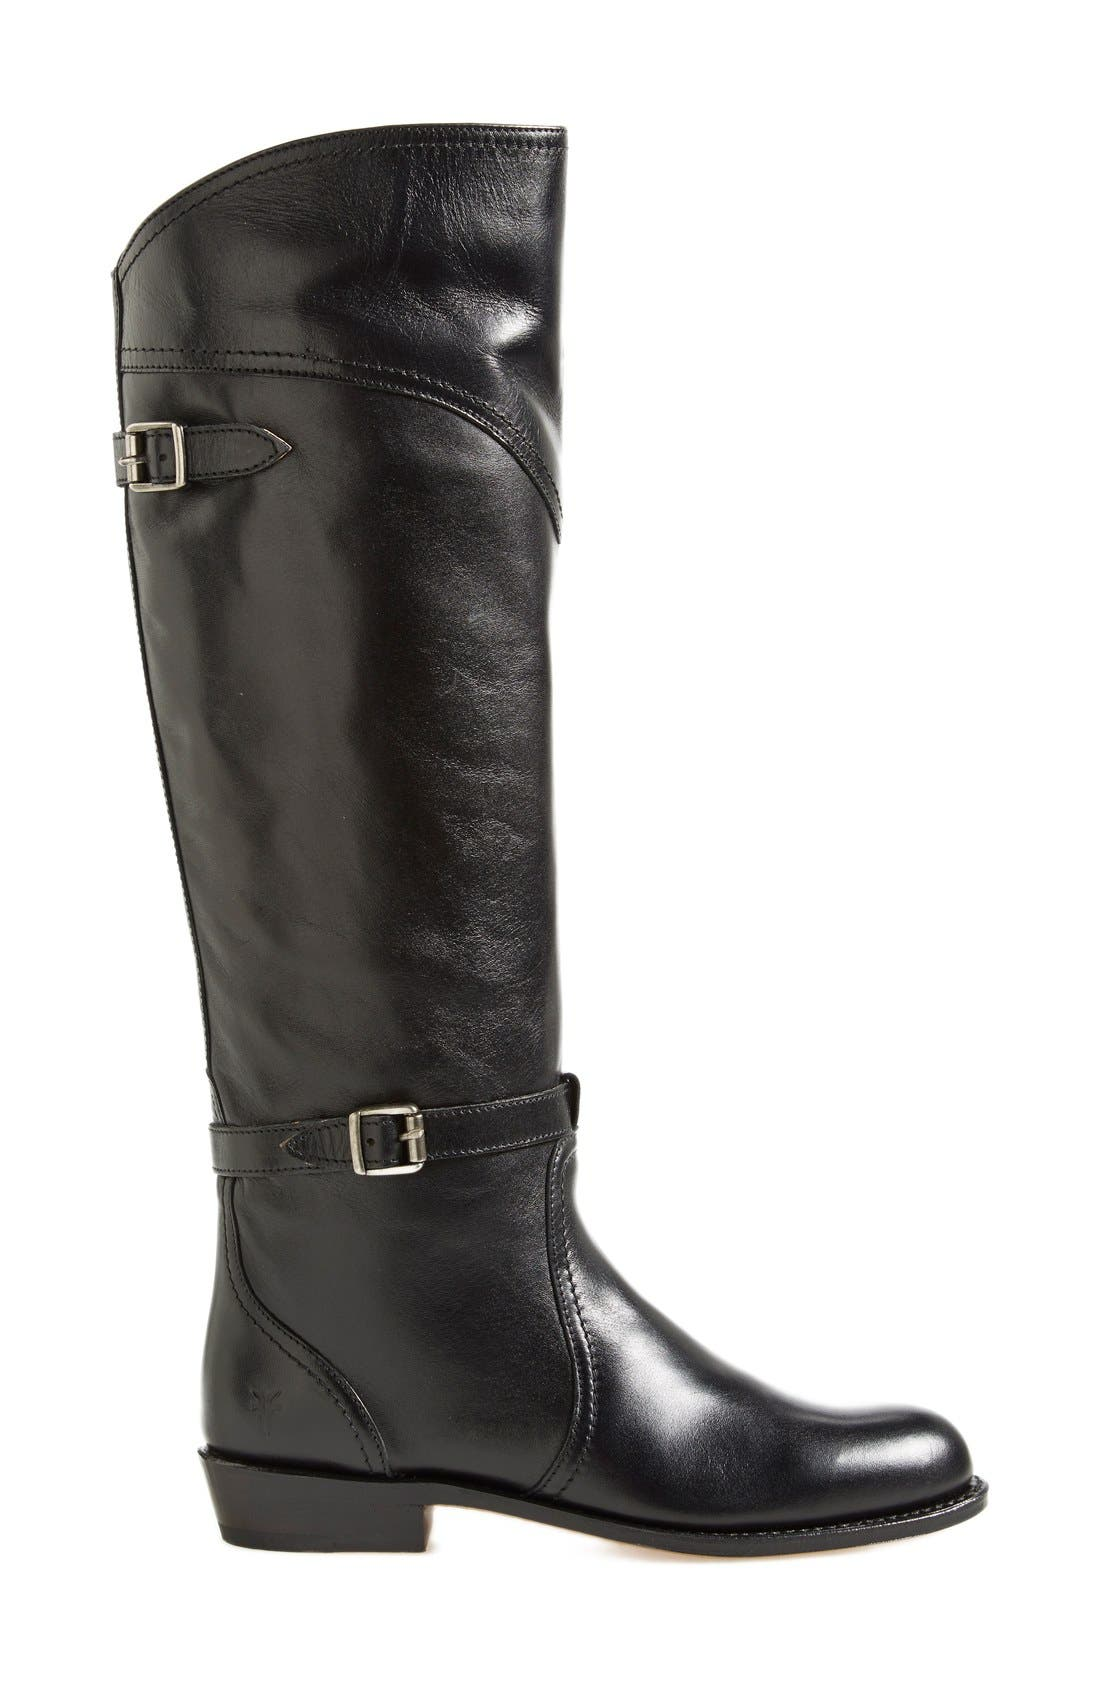 Alternate Image 1 Selected - Frye 'Dorado' Leather Riding Boot